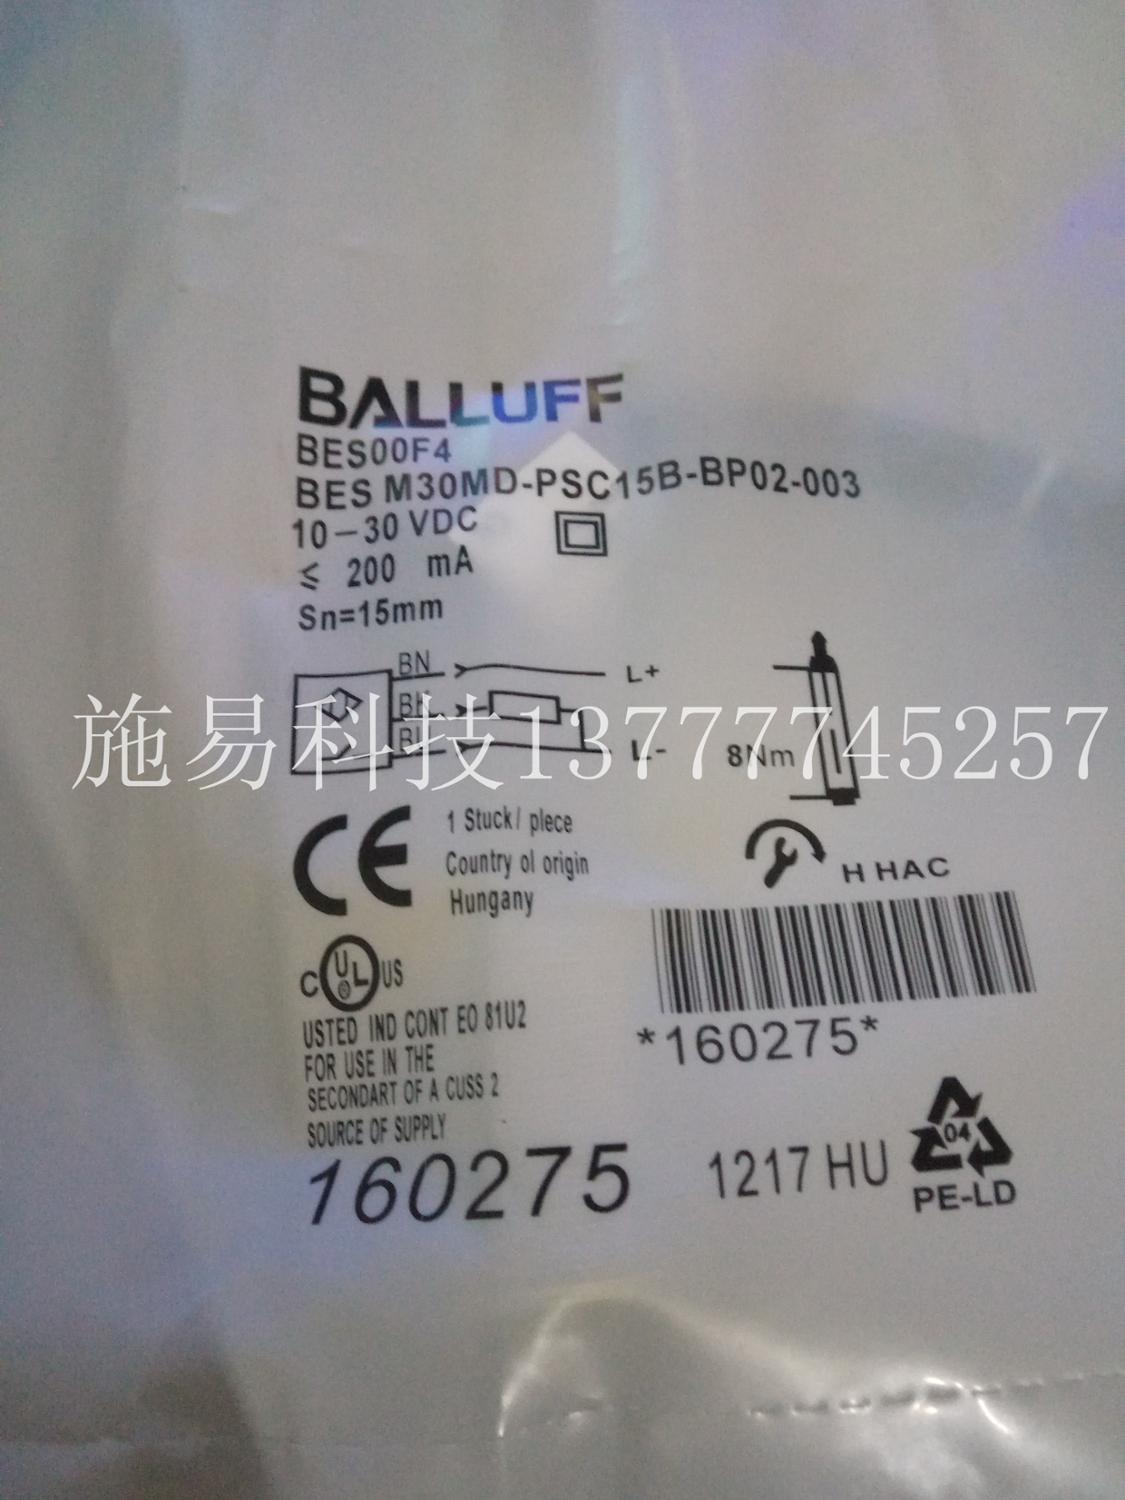 Free shipping 1pcs Brand new proximity inductor BES 516-122-BO-C-05 for all year warranty balluff proximity switch sensor bes 516 383 eo c pu 05 new high quality one year warranty page 8